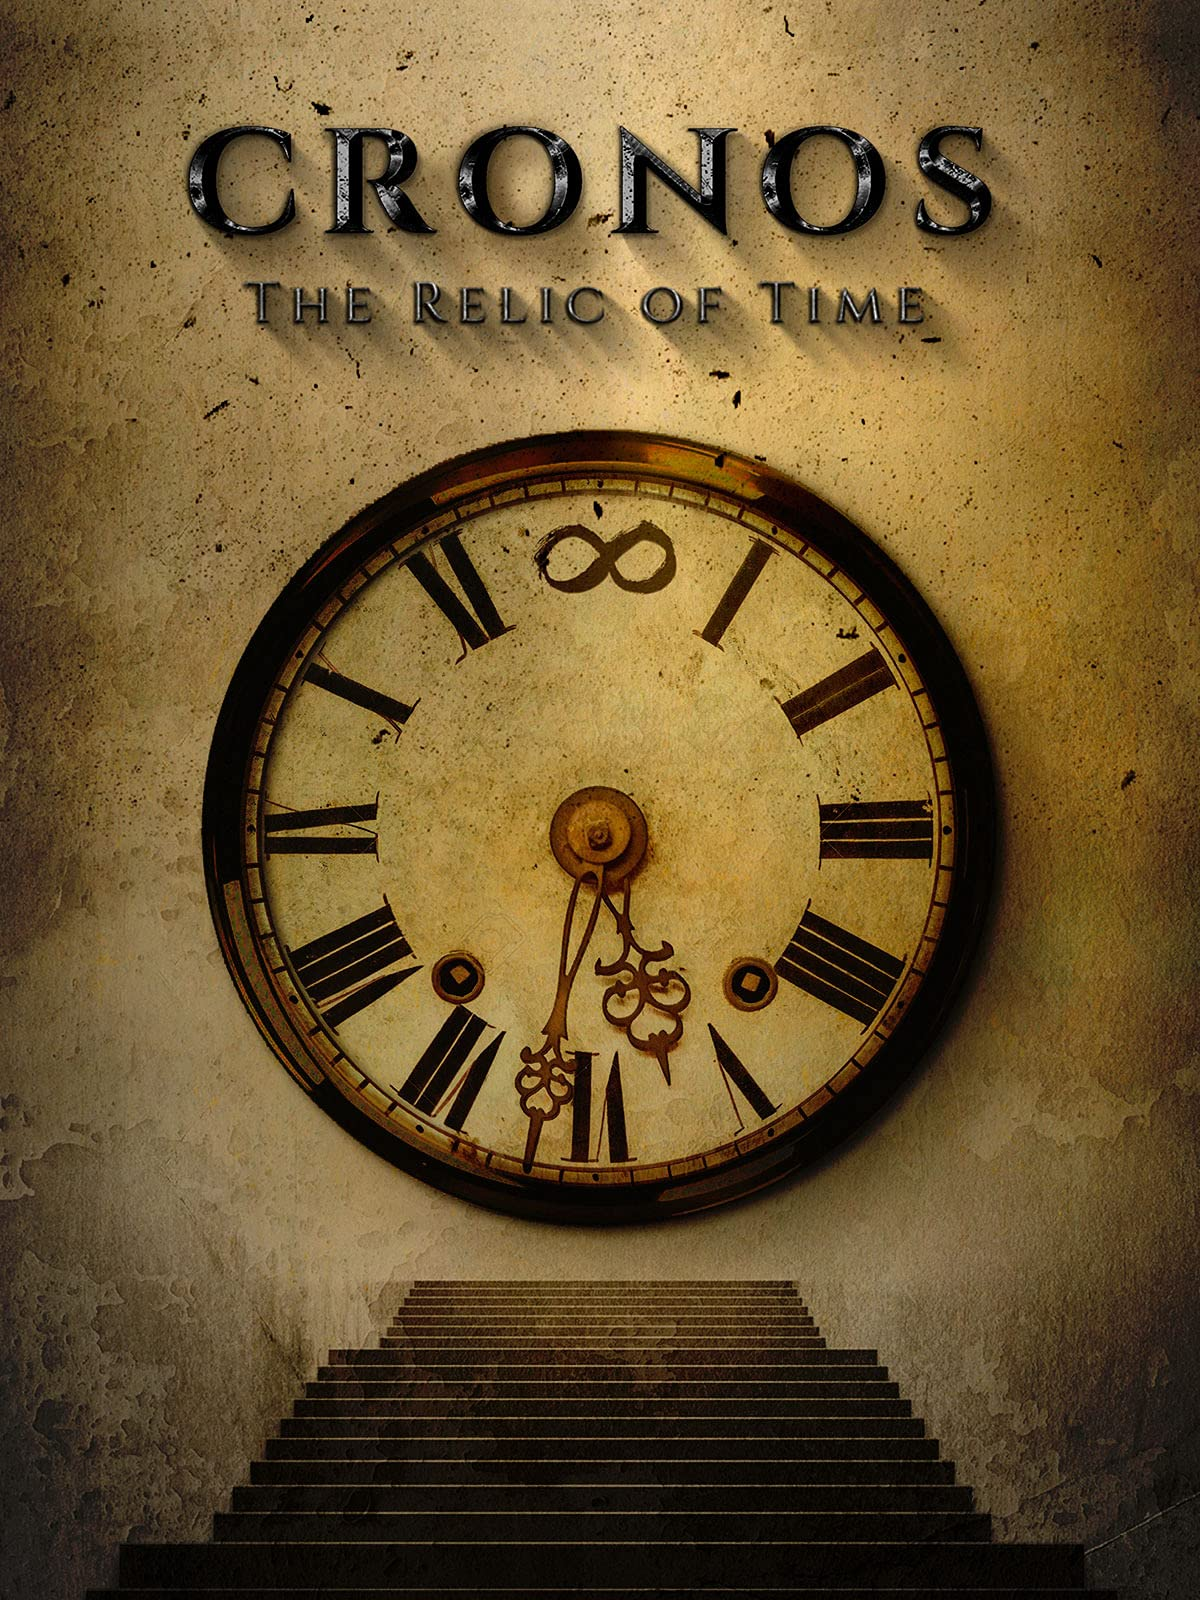 Cronos: The Relic Of Time